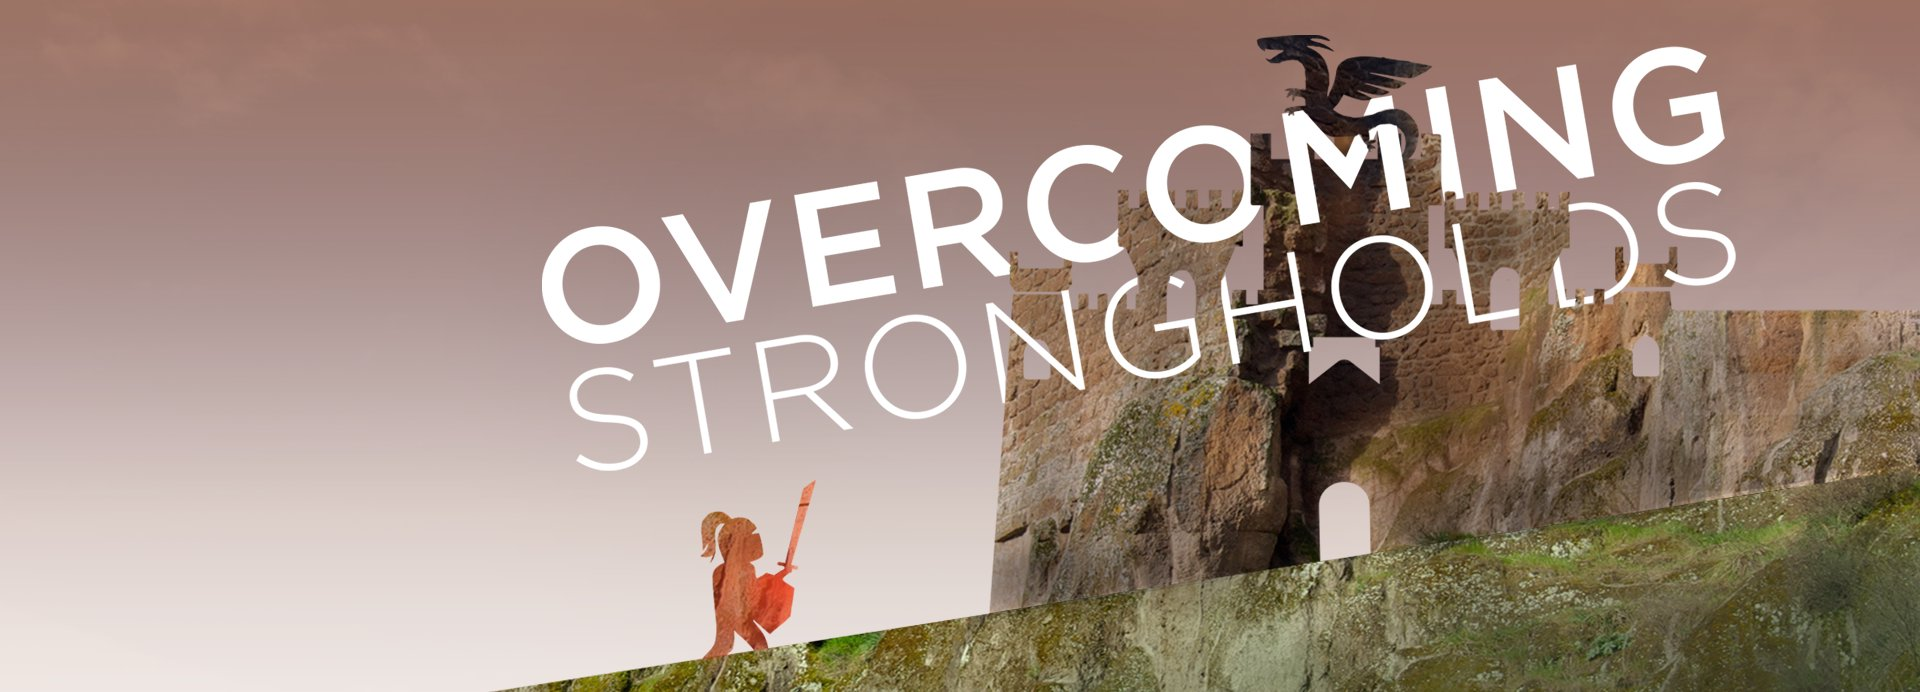 Overcoming Strongholds - New Life Wesleyan Church